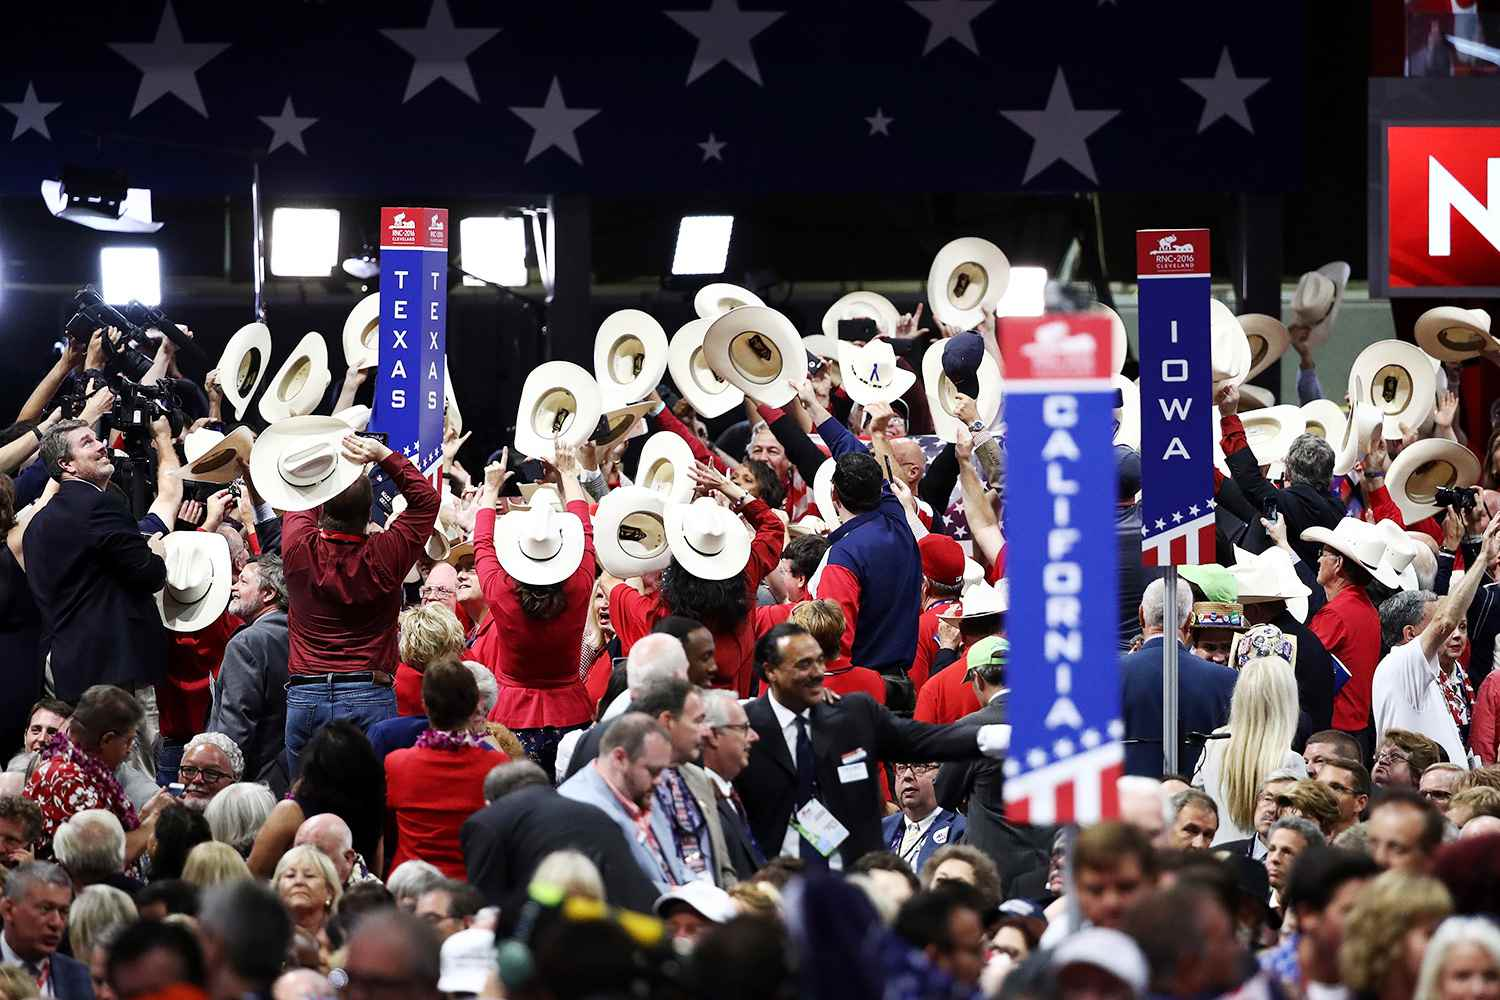 Texas delegates for Ted Cruz at the 2016 republican national convention